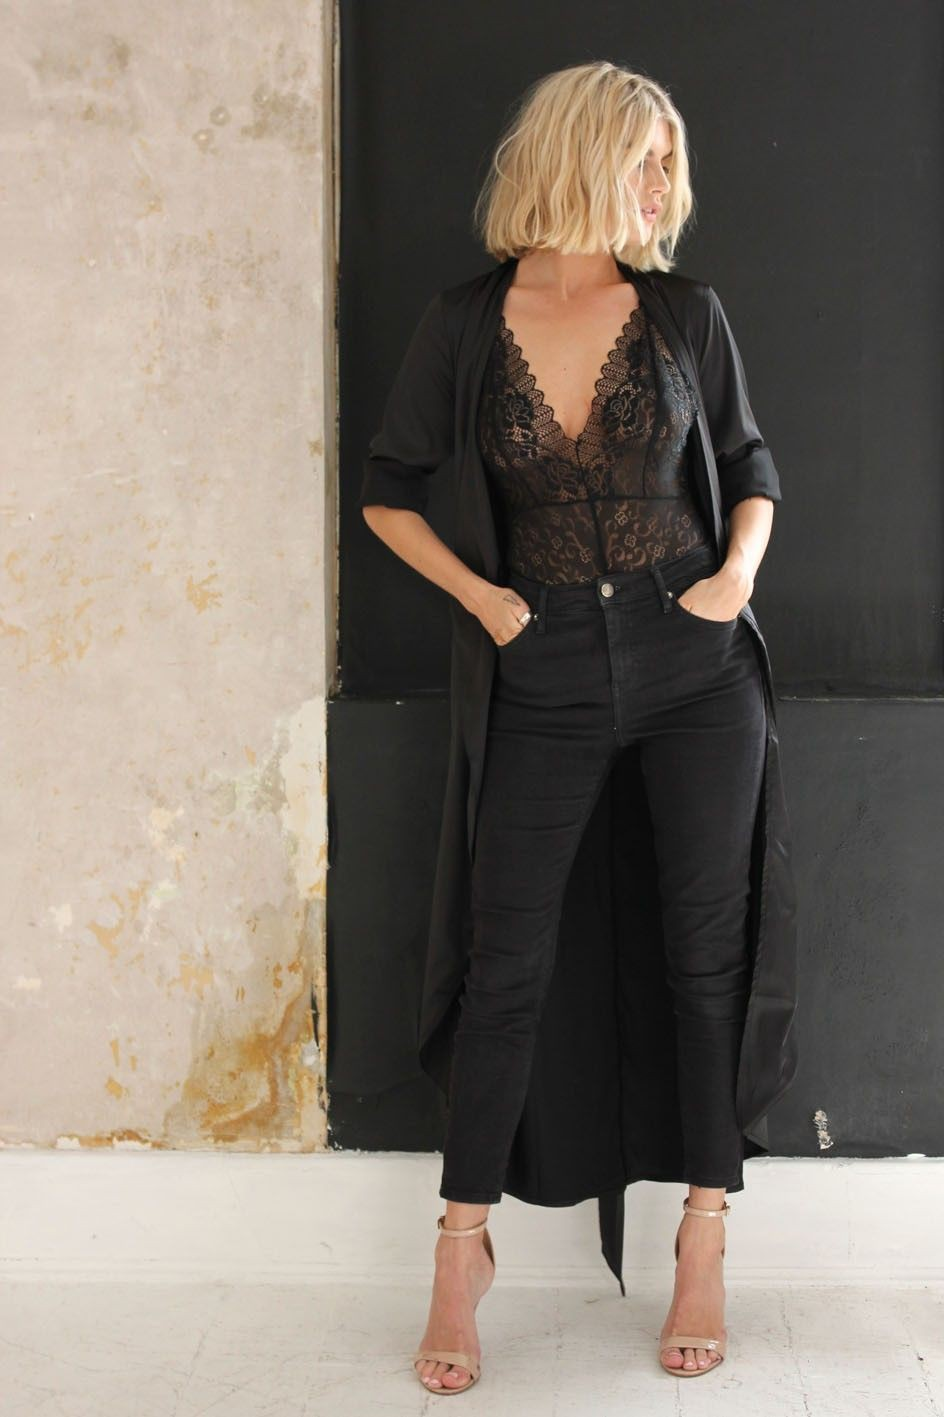 Black satin duster outfit